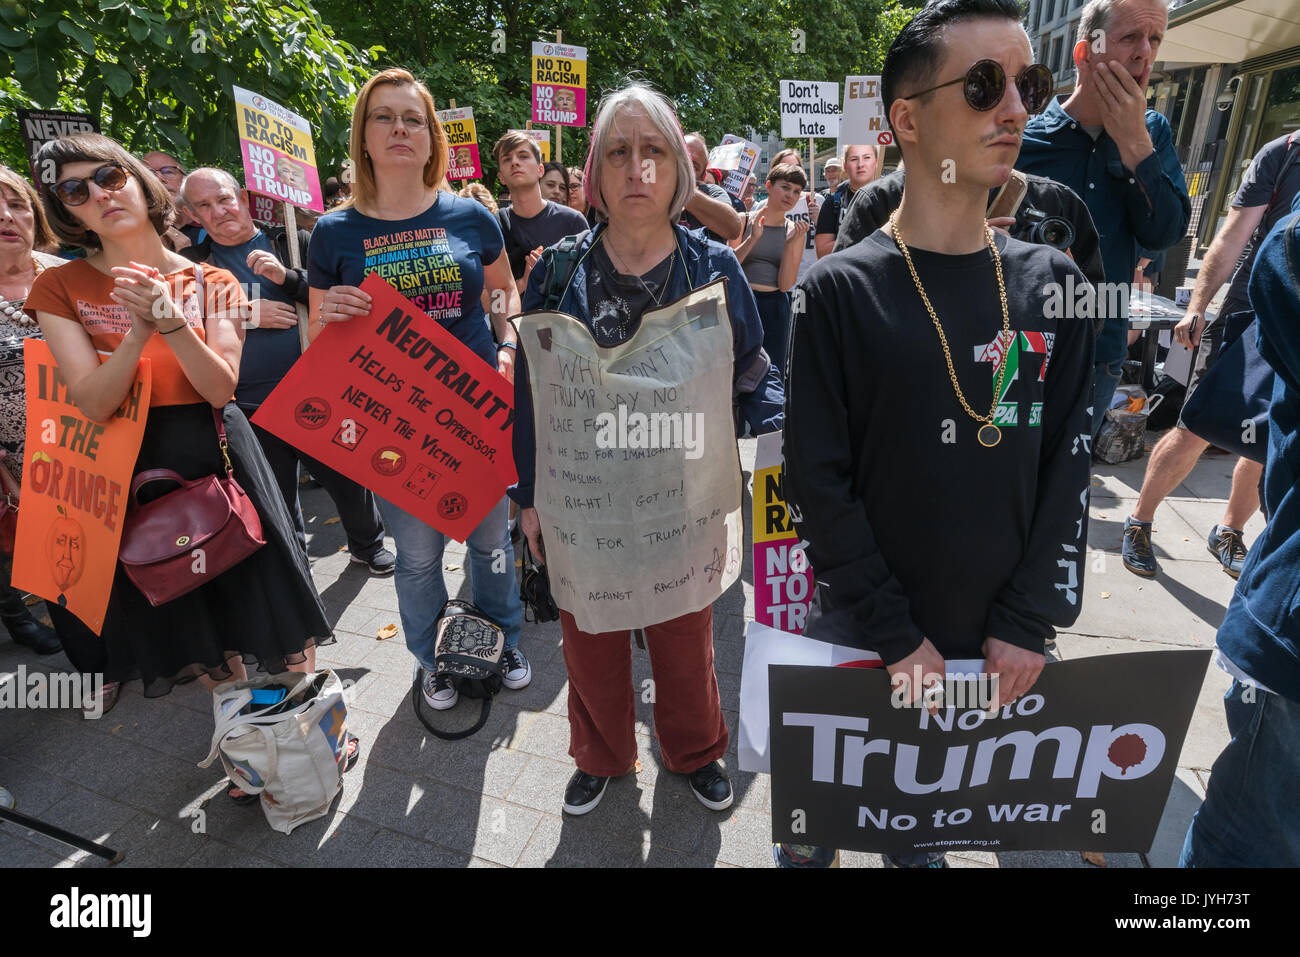 London, UK. 19th Aug, 2017. Stand Up to Trump, an organisation supported by around 20 organisations including the CWU, NUT, Unite, UCU, CND, Stop the War, Campaign Against Climate Change, Muslim Association of Britain and others protest outside the US Embassy. is support of climate-wreckin - Stock Image